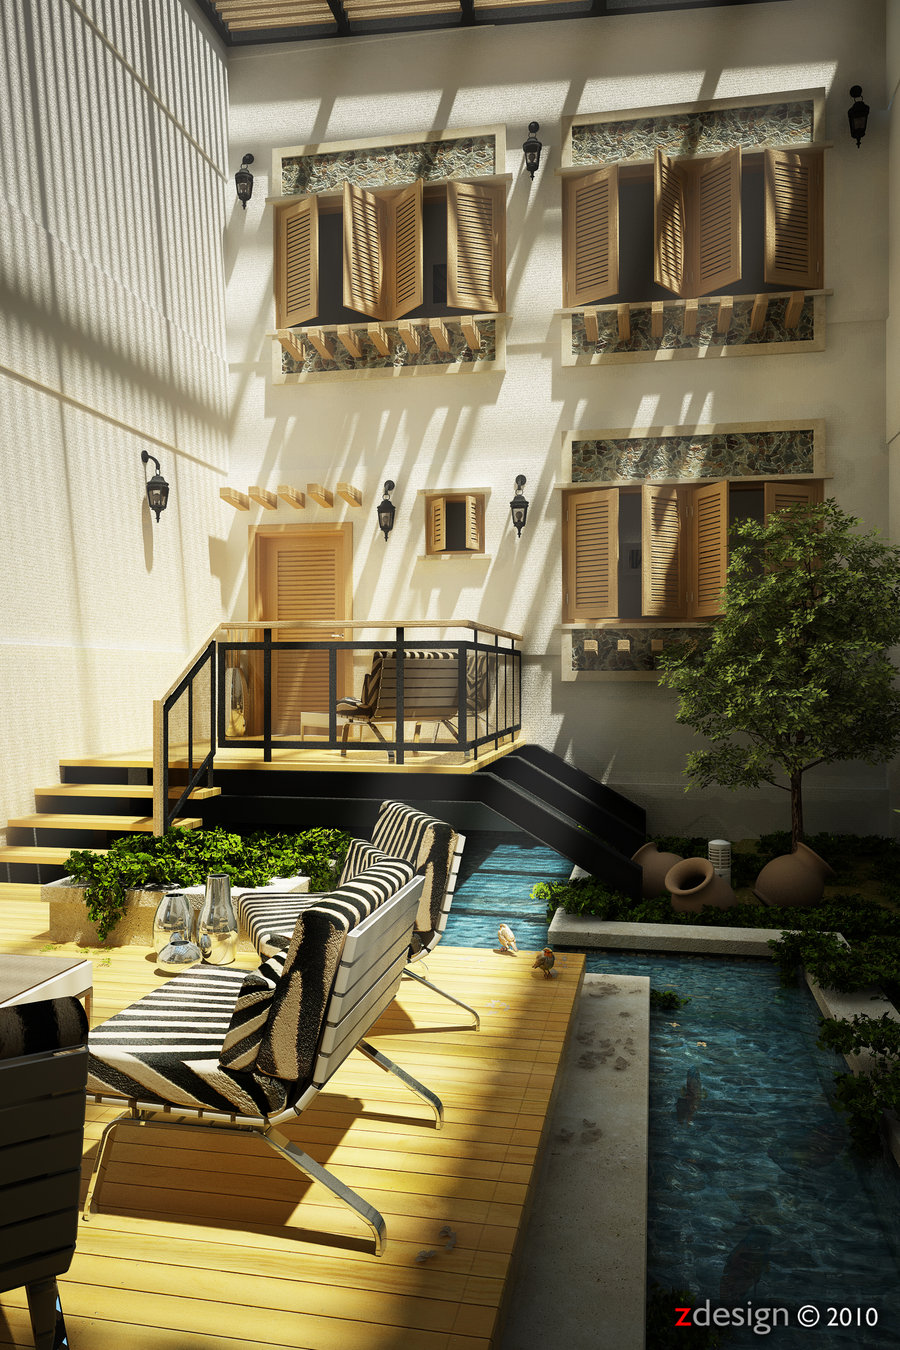 Courtyard design and landscaping ideas for Internal courtyard design ideas